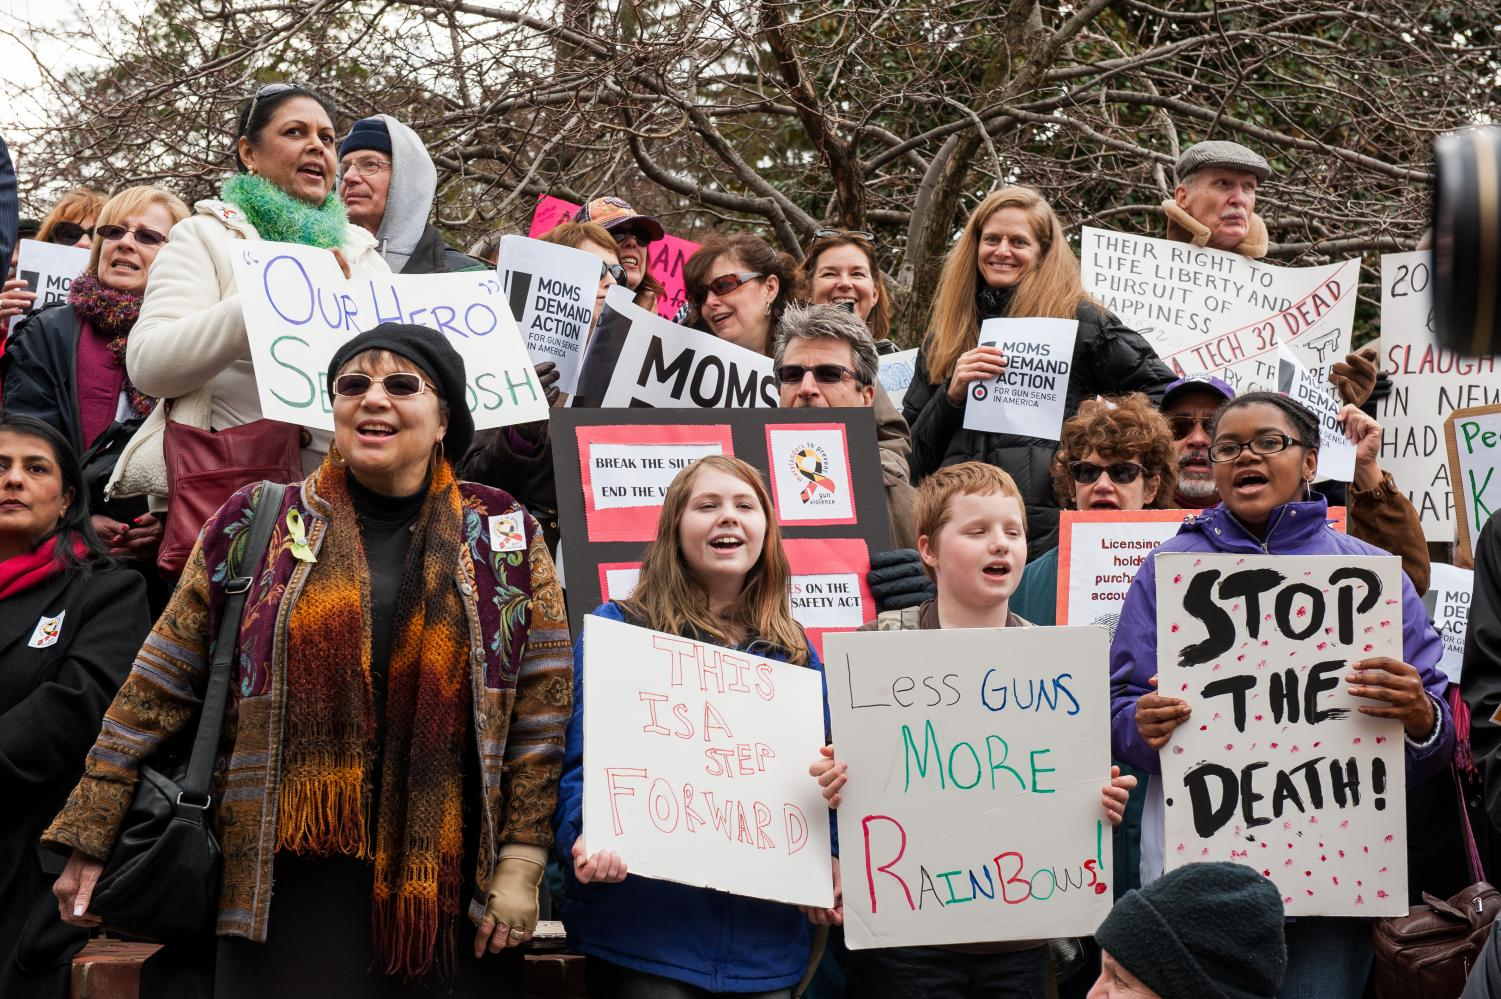 Rally to Prevent Gun Violence at Annapolis, MD via Flickr